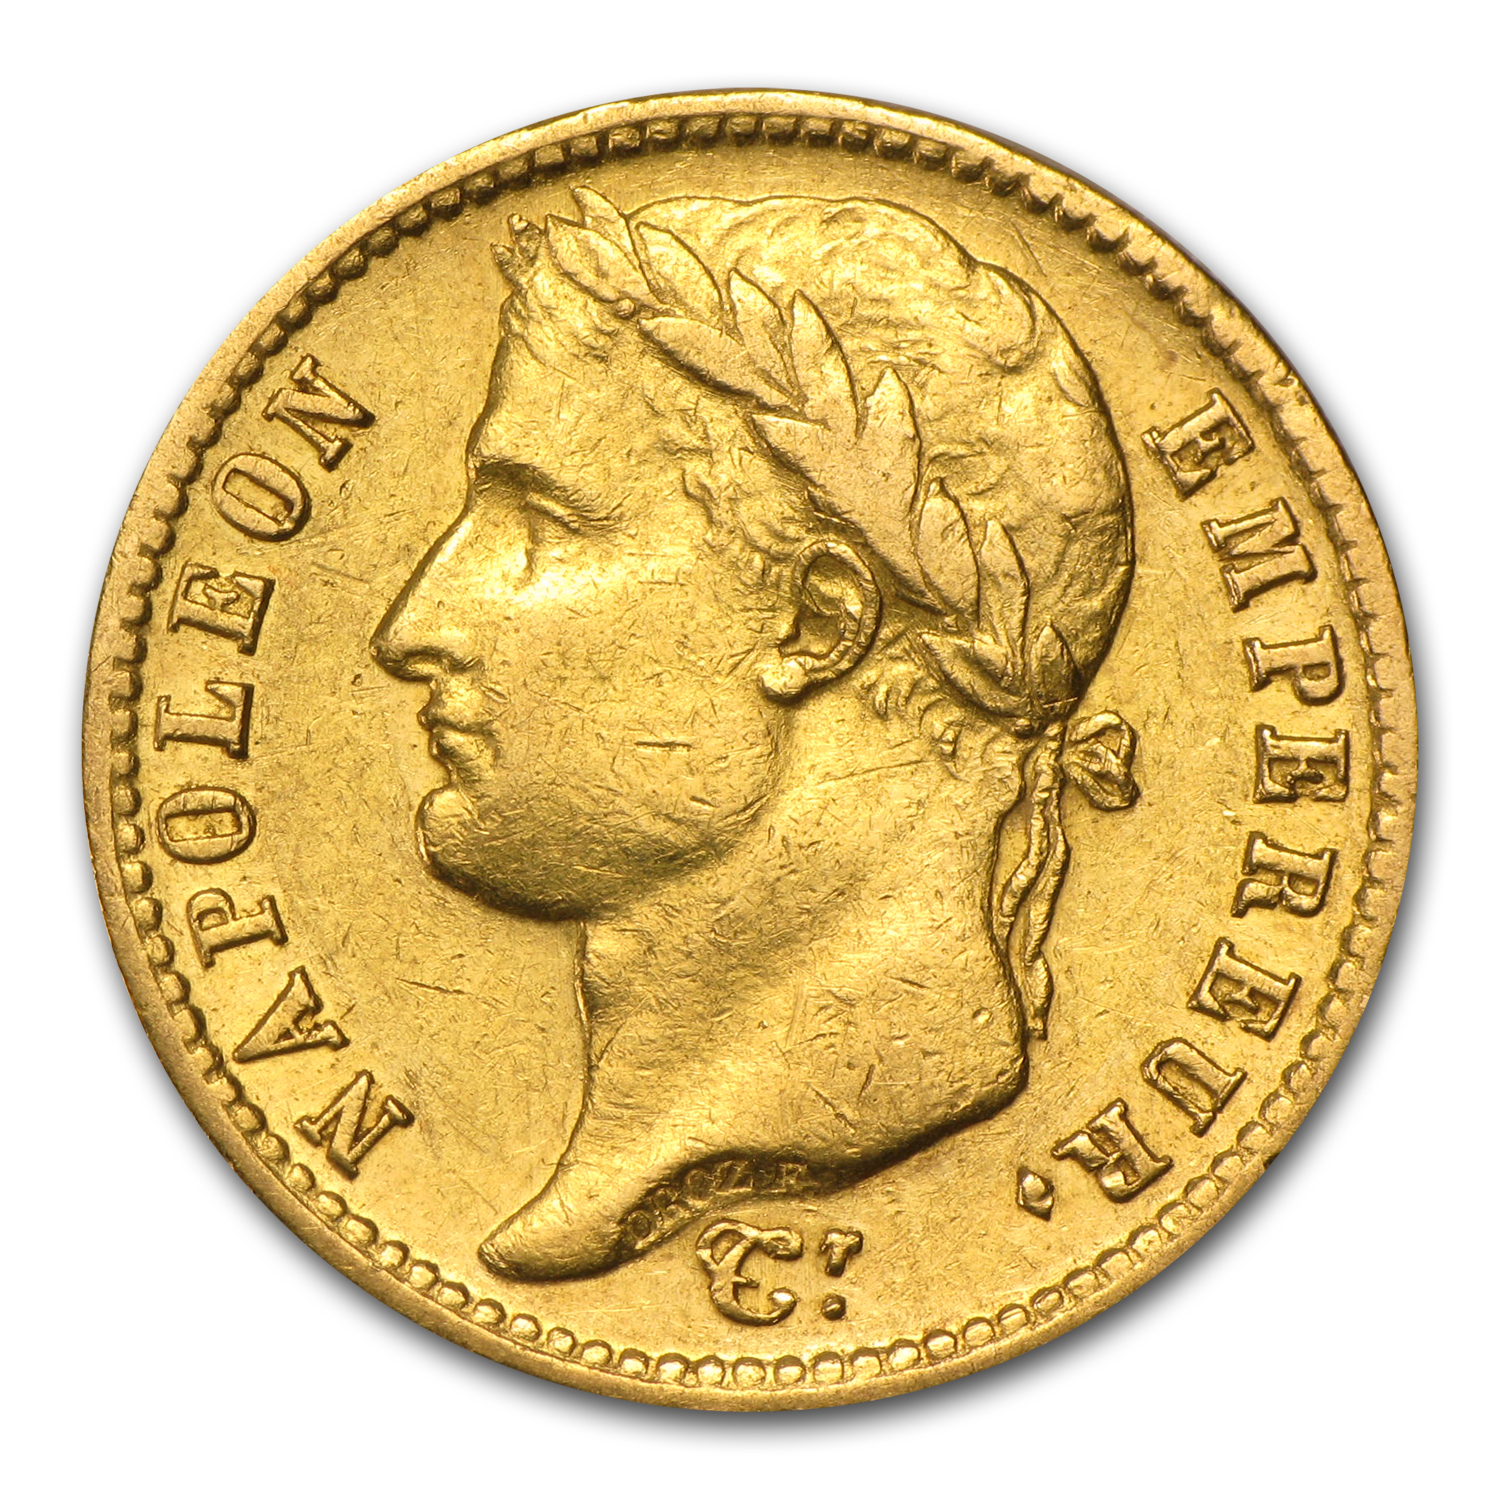 France Gold 20 Francs of Napoleon I - (Extra Fine)